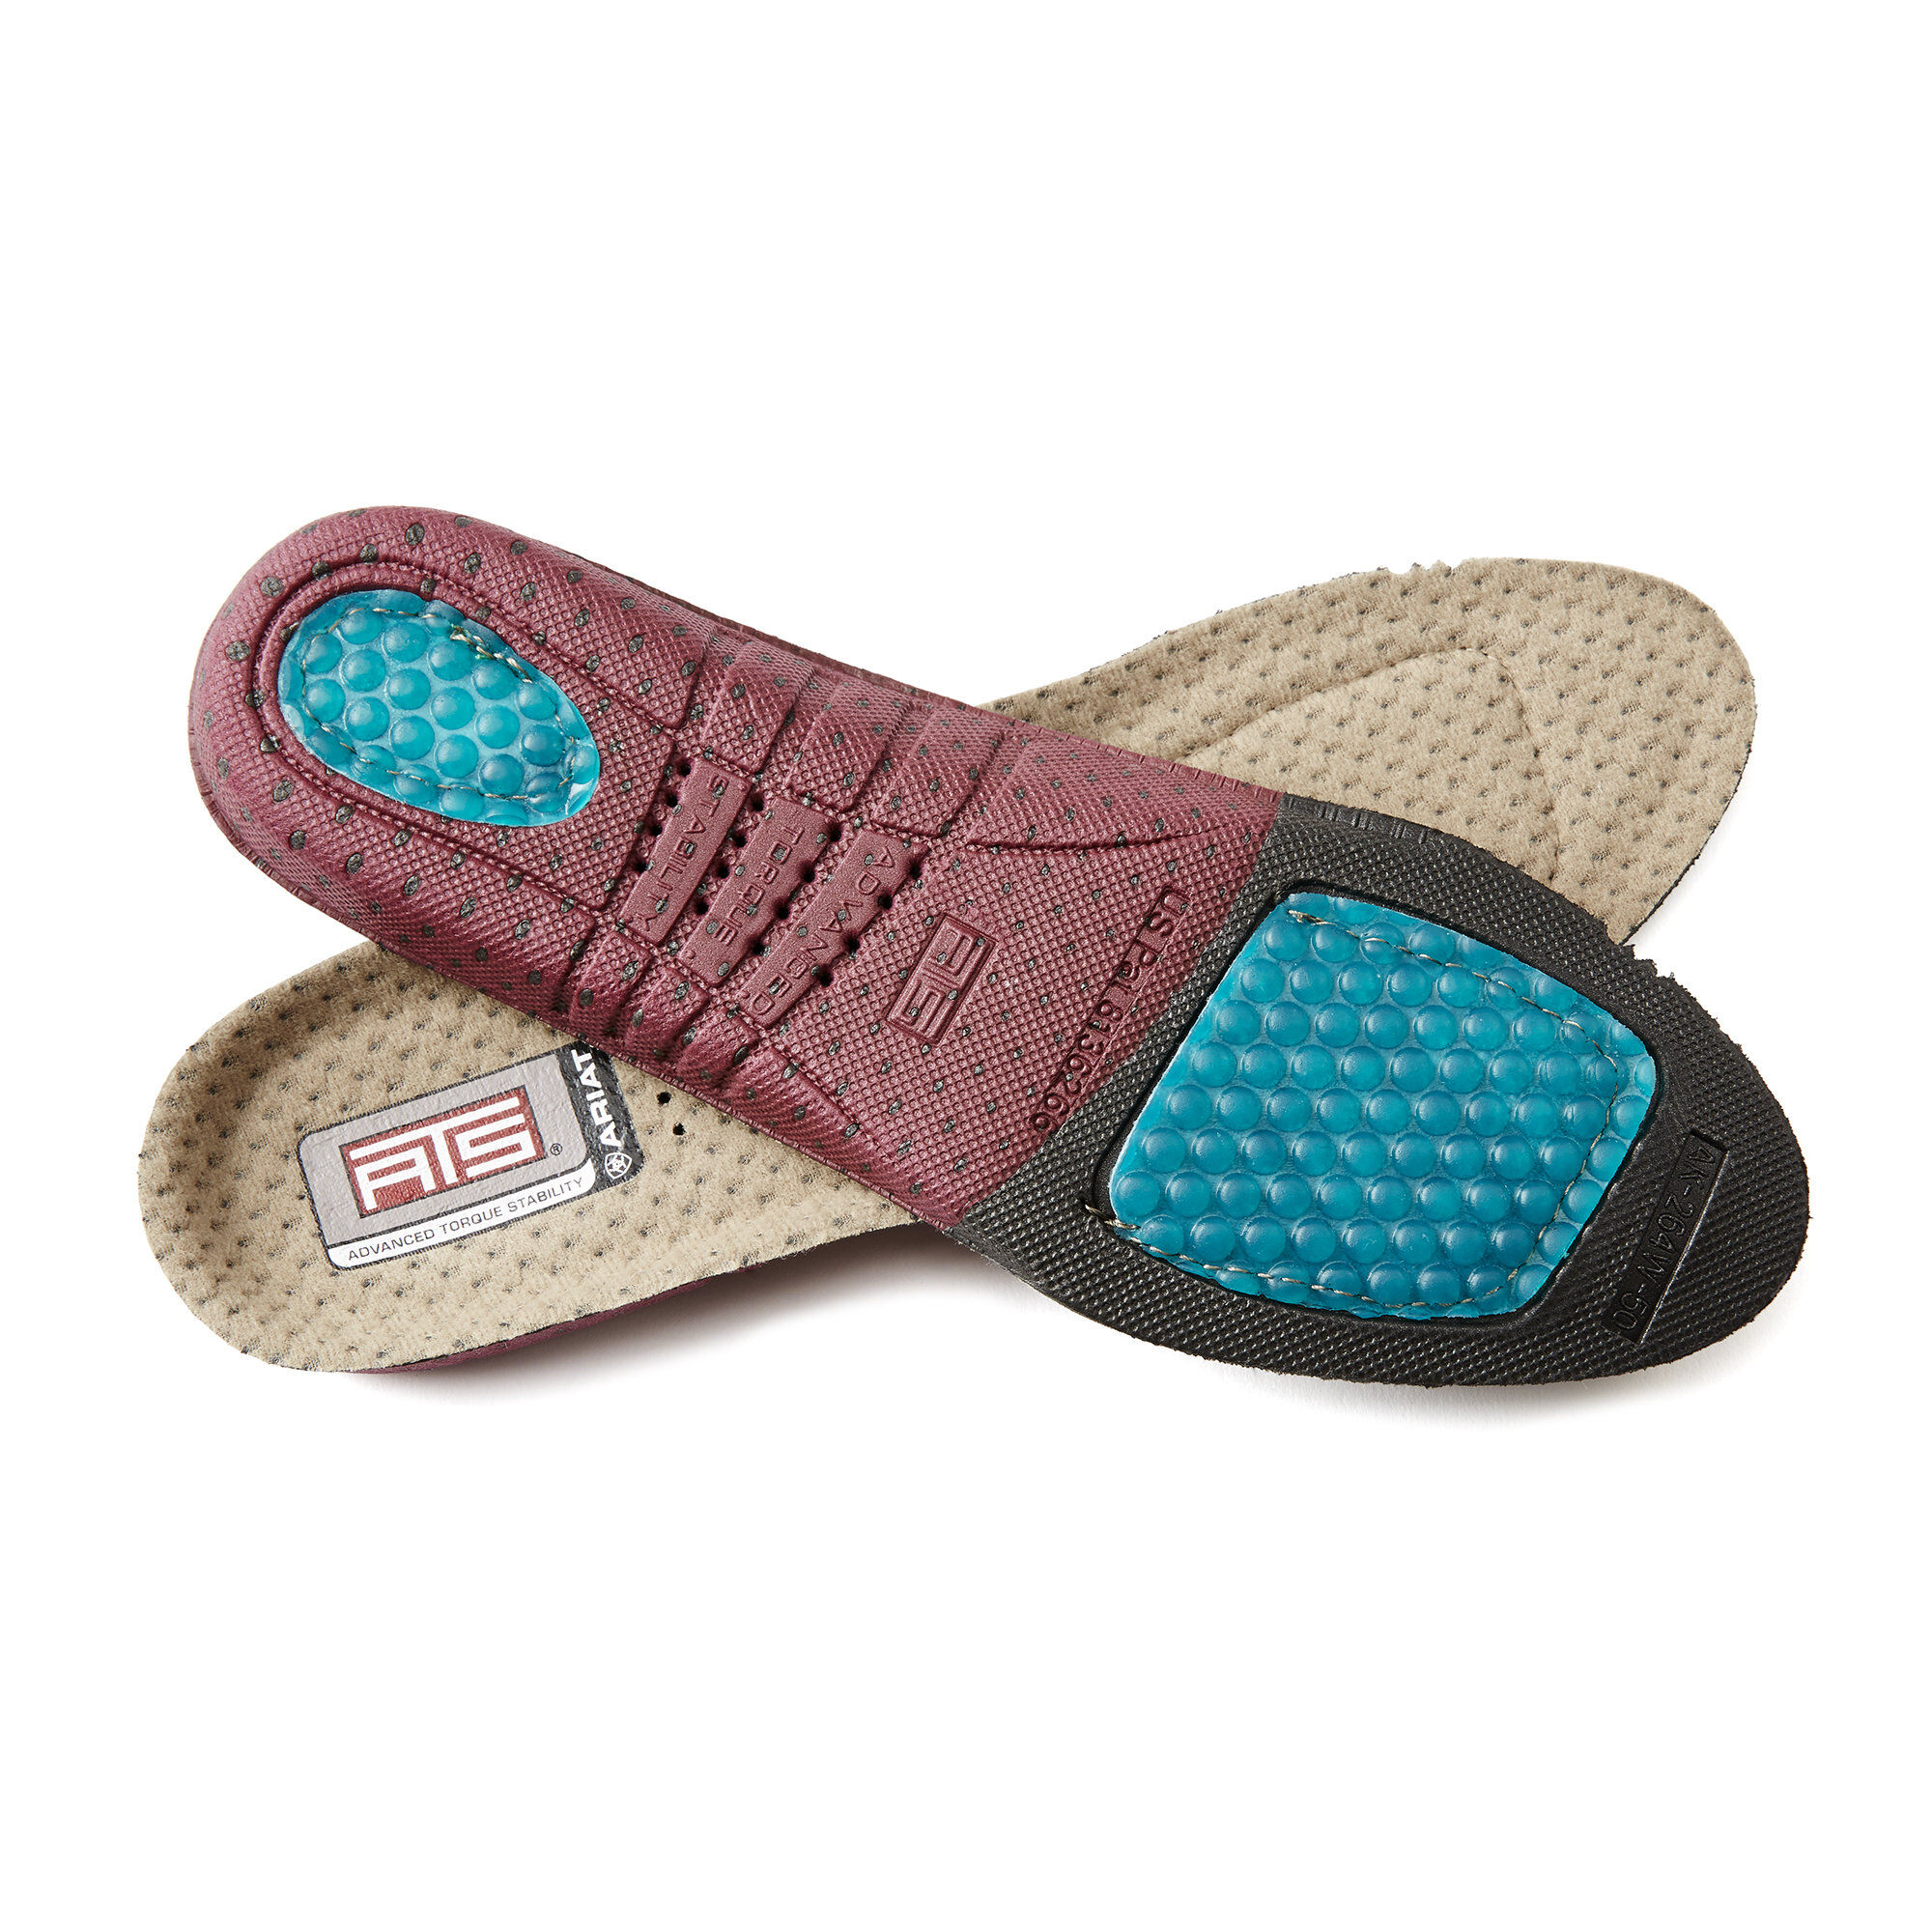 ATS RT Footbed